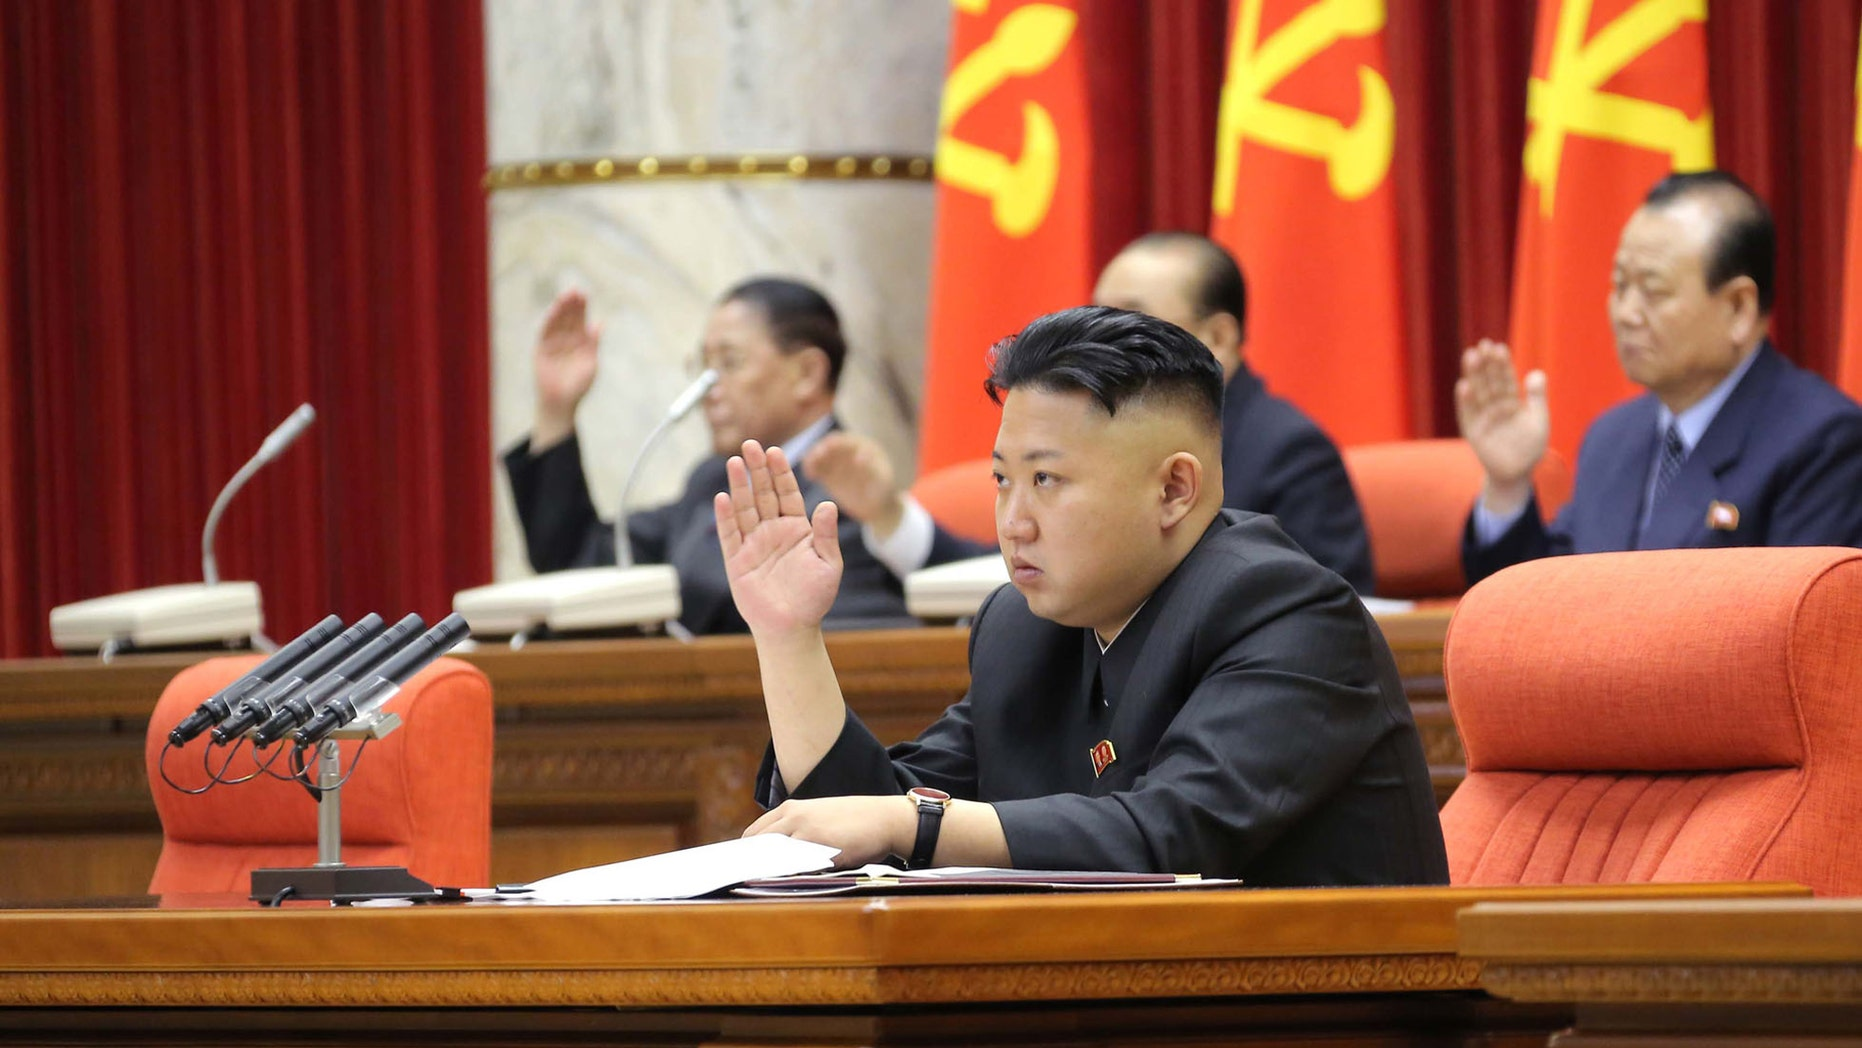 March 31, 2013: North Korean leader Kim Jong Un with other officials adopts a statement during a plenary meeting of the central committee of the ruling Workers' Party in Pyongyang, North Korea.